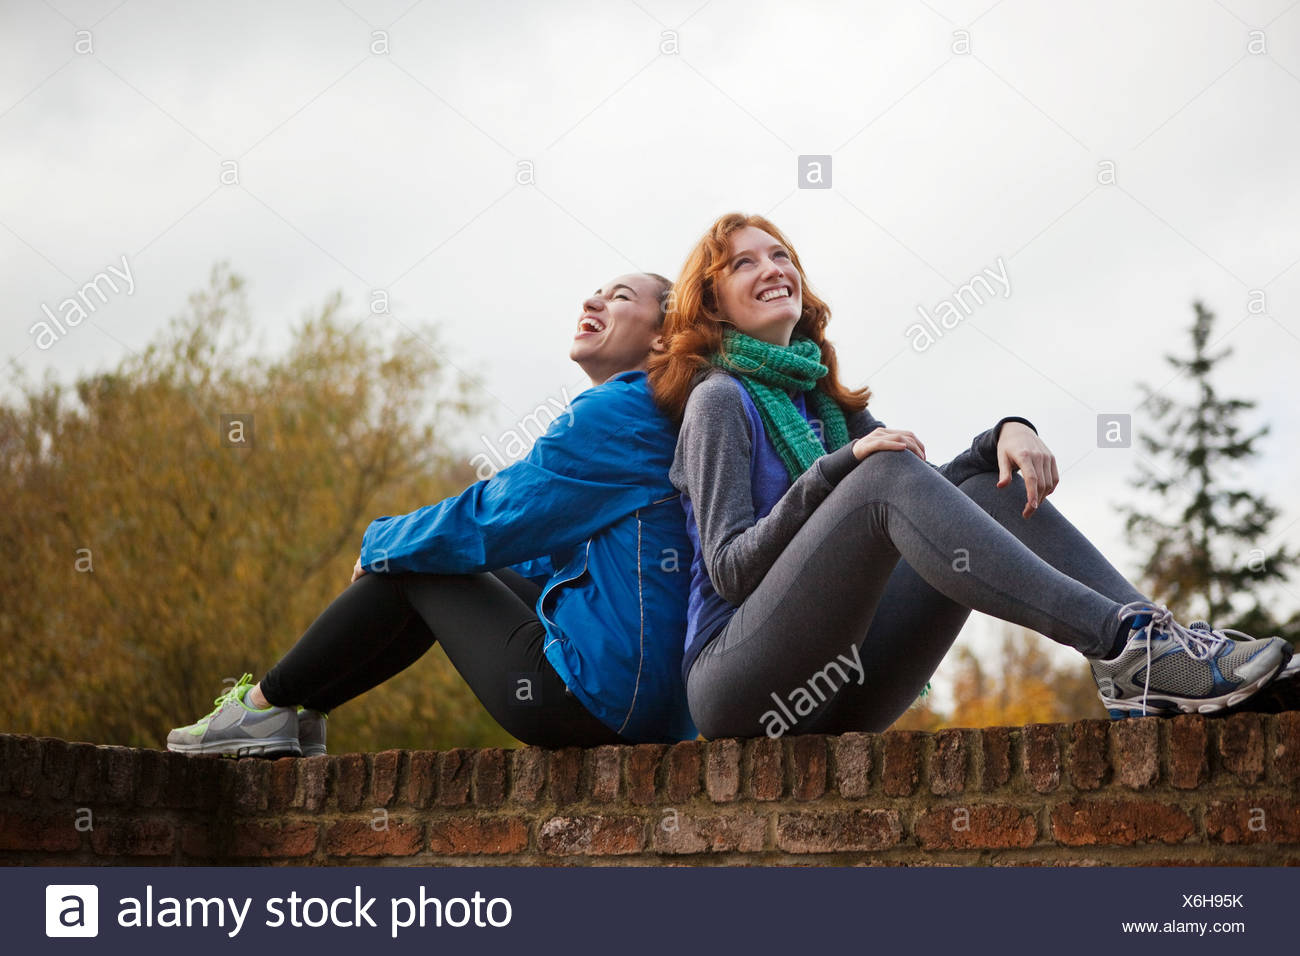 Young women sitting back to back on brick wall - Stock Image